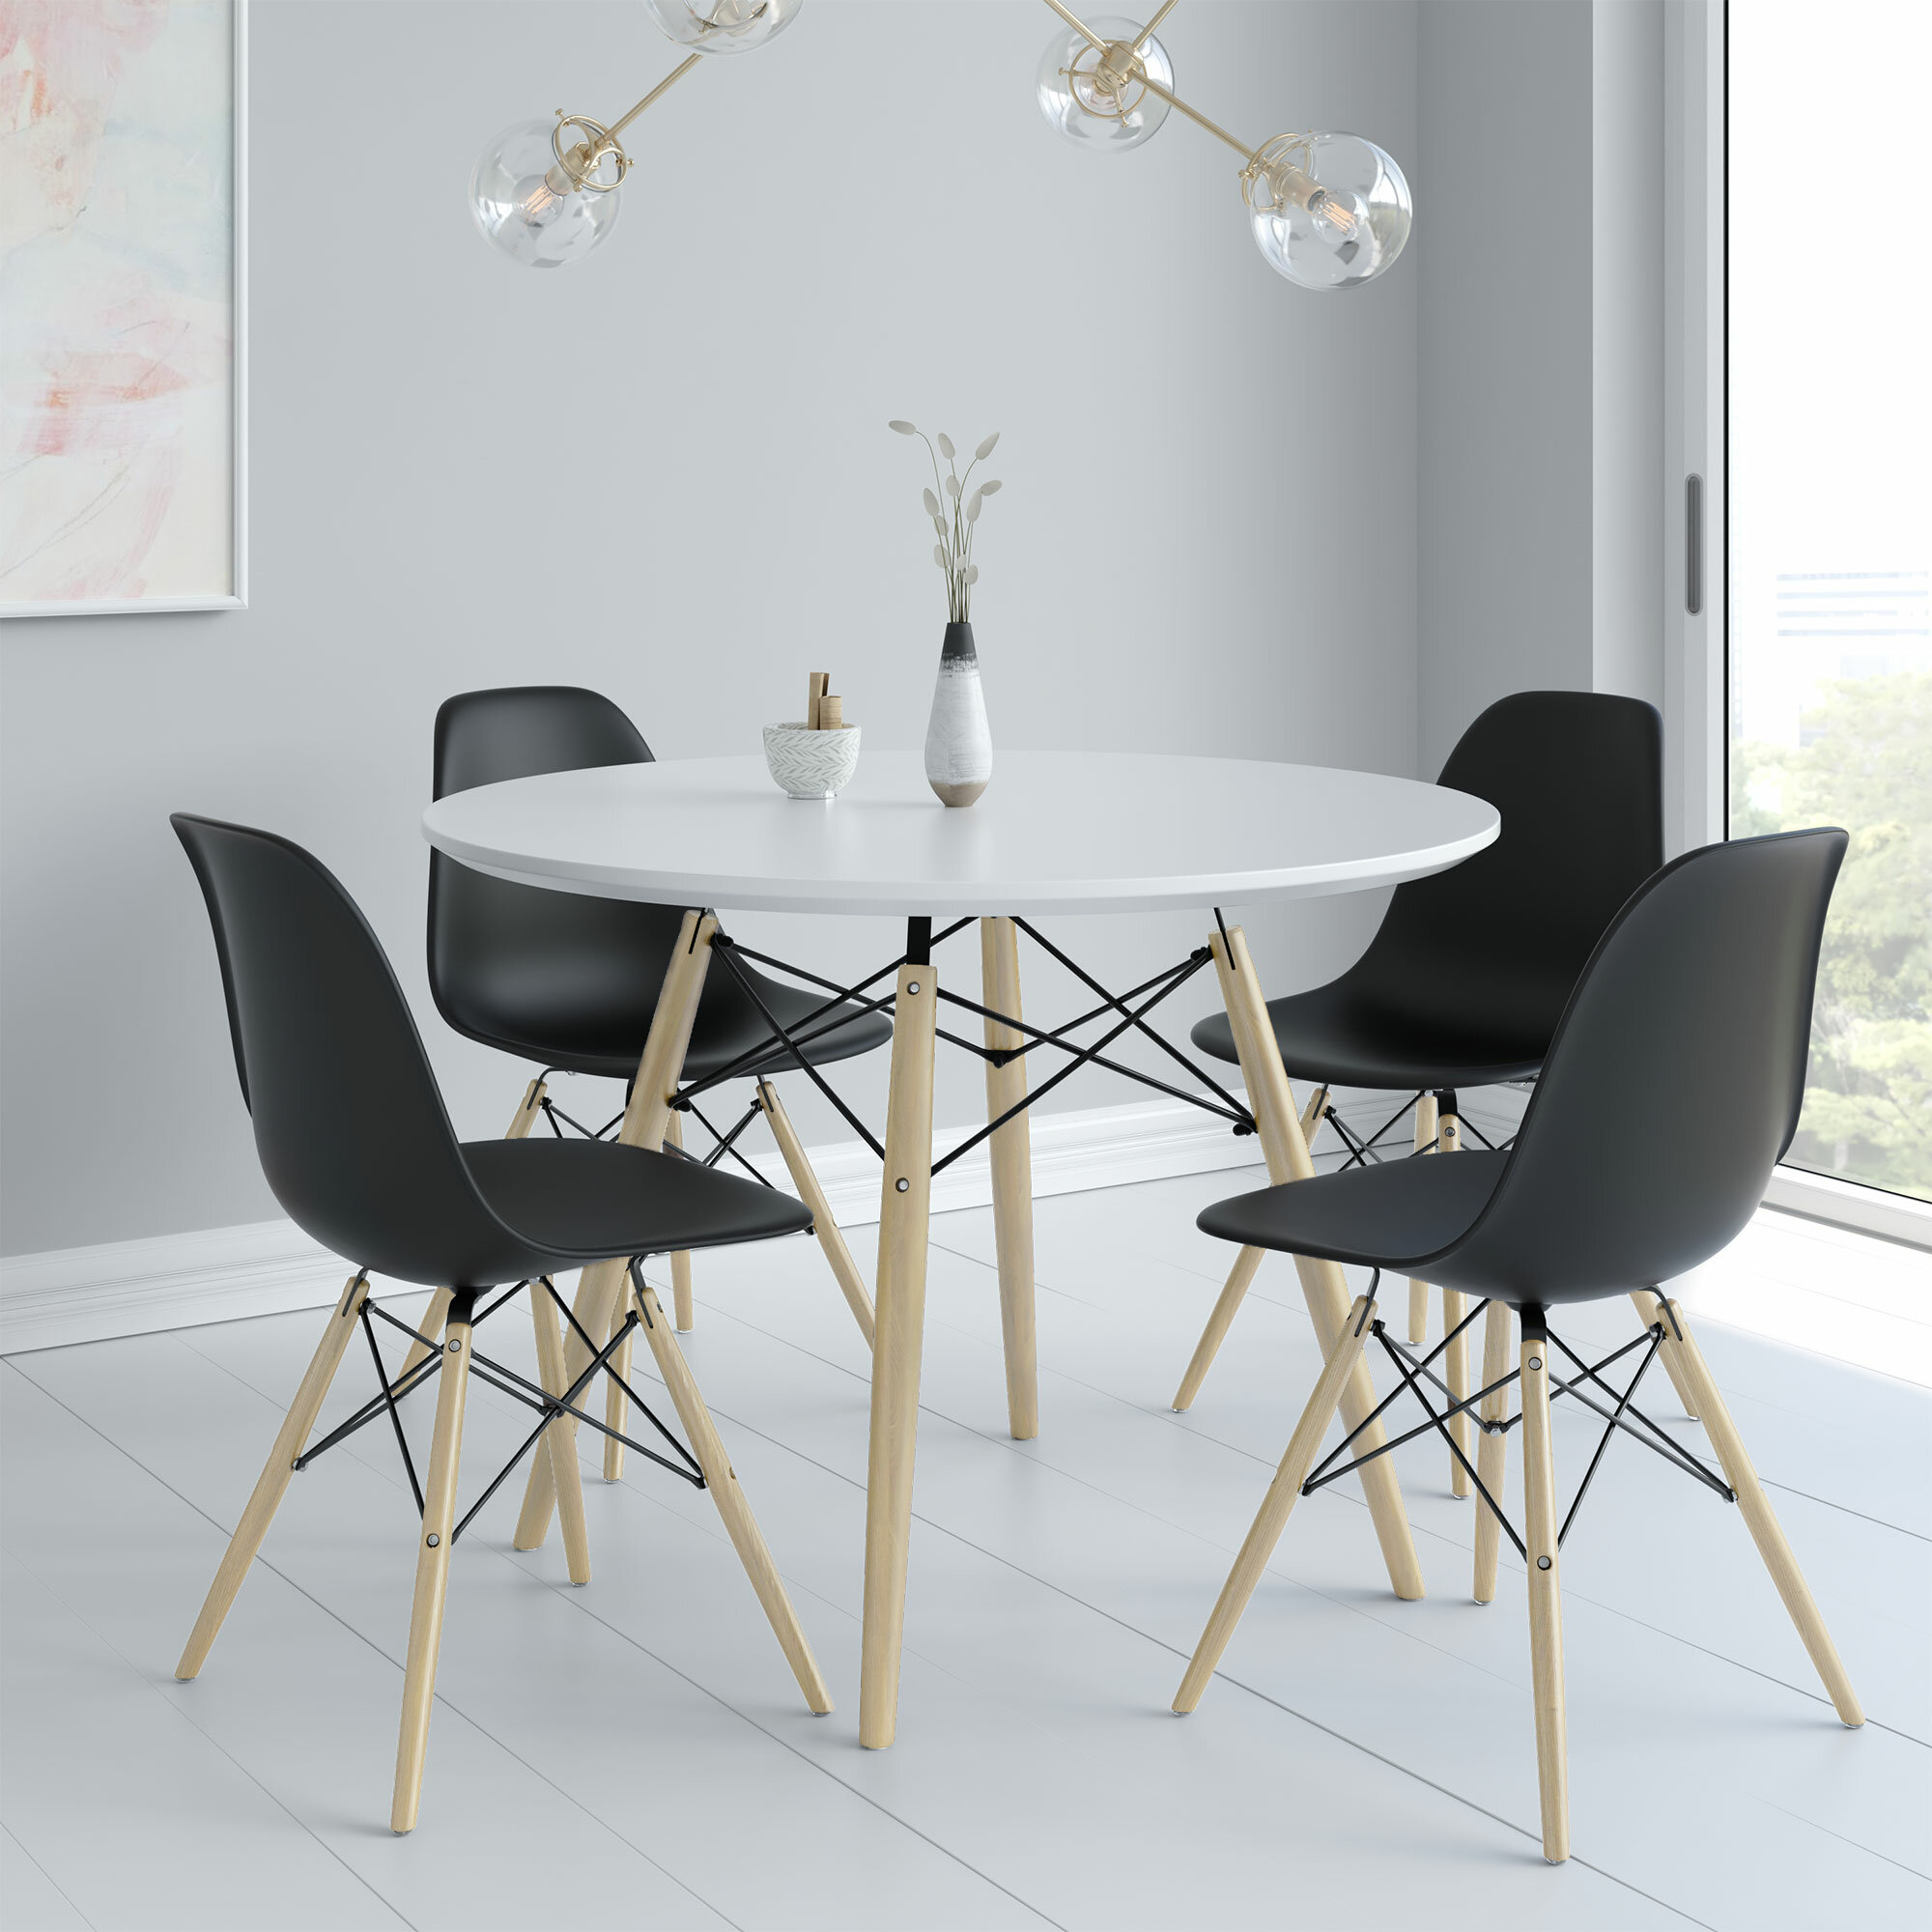 Kitchen Dining Room Sets You Ll Love: Small (Seats Up To 4) Kitchen & Dining Room Sets You'll